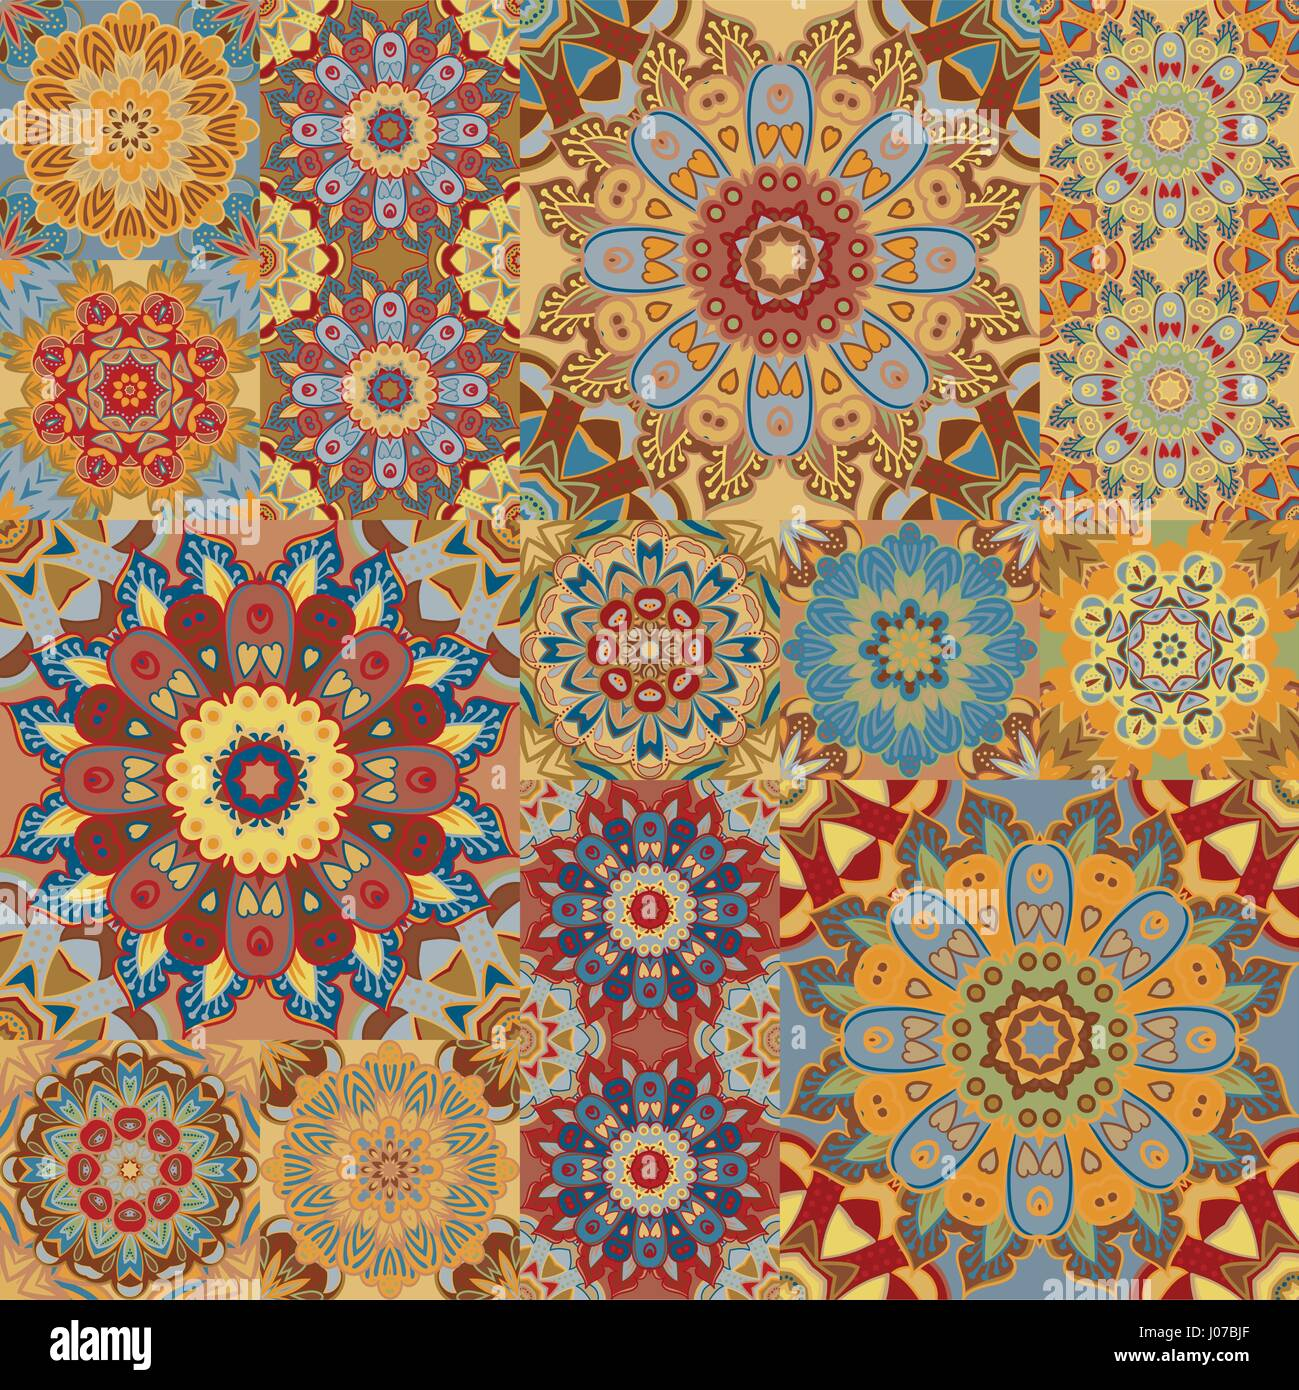 Boho Tile Set And Seamless Pattern Brown Patchwork For Fabric Print Wallpaper Fashionable Textile Square Design Elements Unusual Flower Ornament Vector